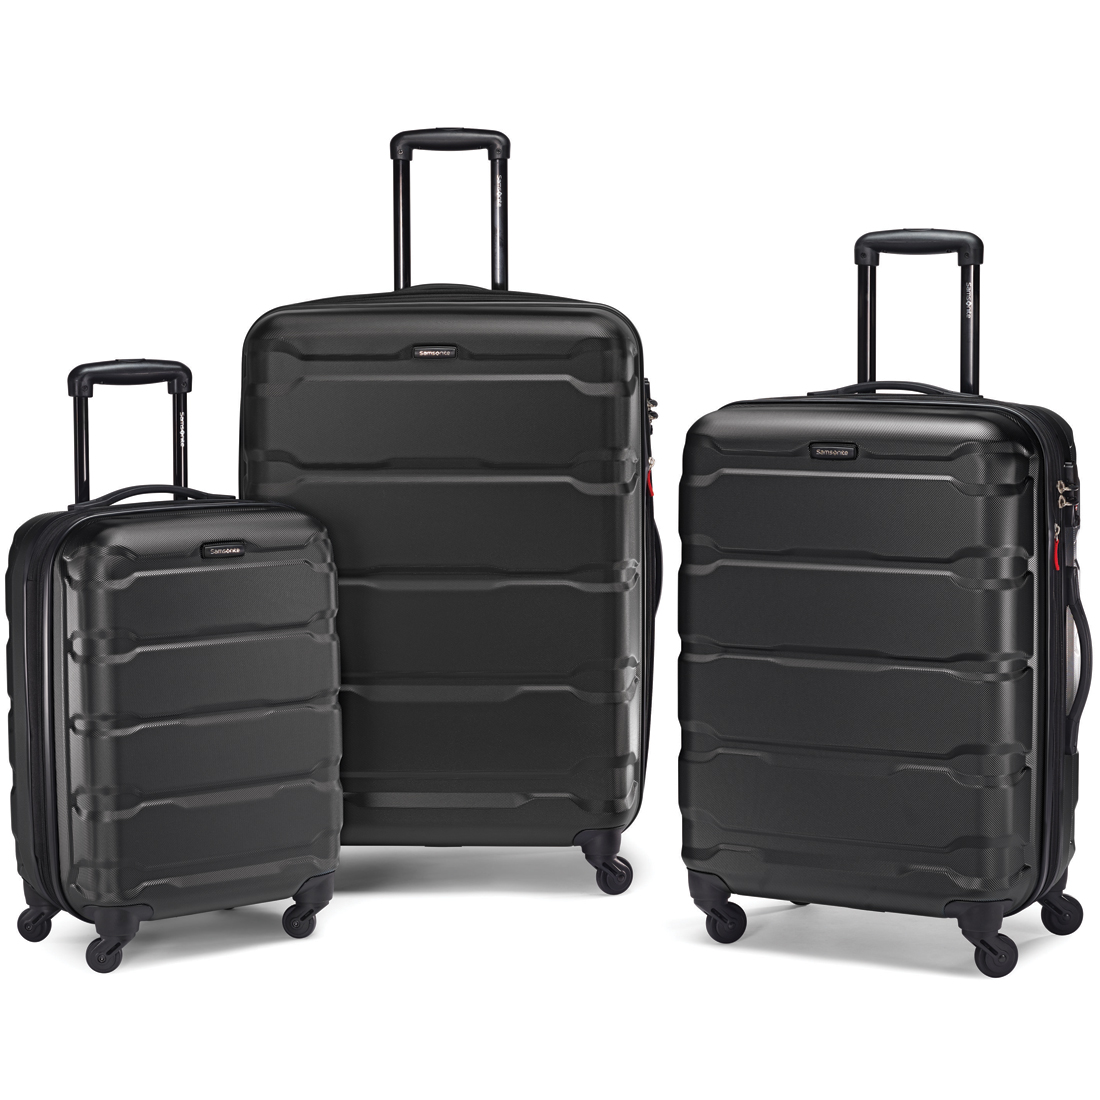 Samsonite-Omni-24-Inch-Hardside-Spinner-Luggage-Suitcase-Choose-Color thumbnail 9